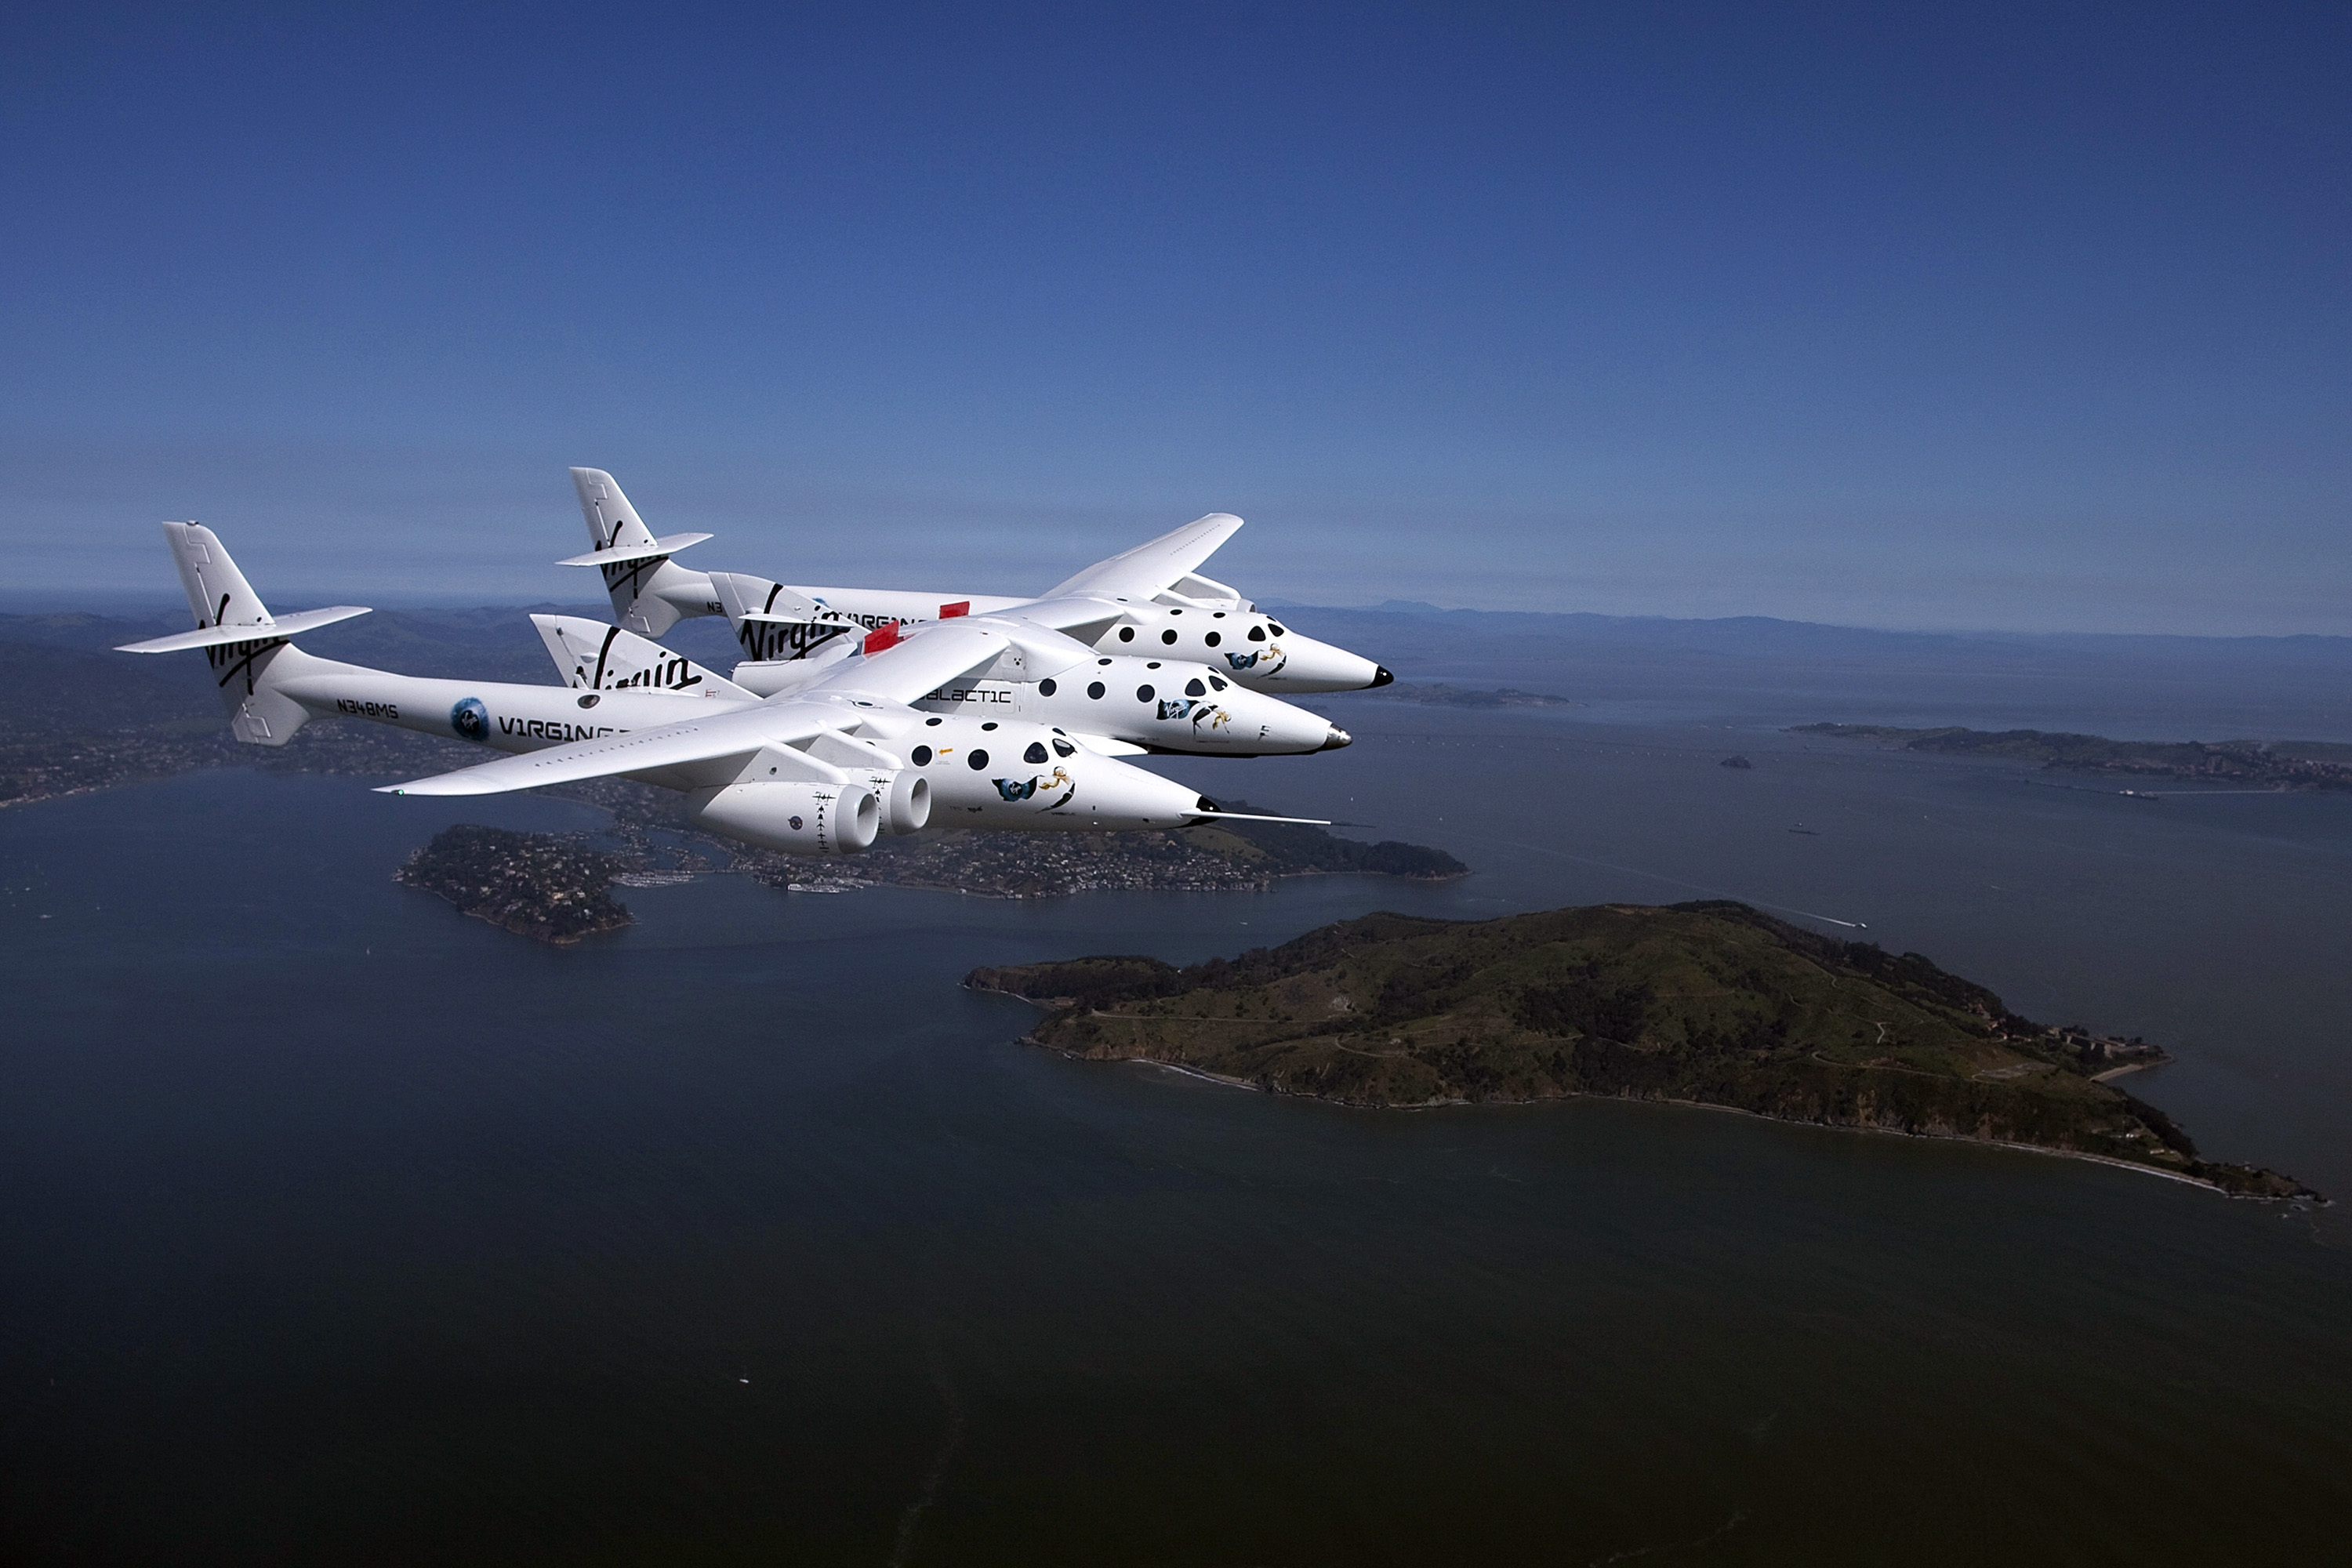 Virgin Galactic's private SpaceShipTwo spacecraft flies over the San Francisco Bay in San Francisco on April 6, 2011.